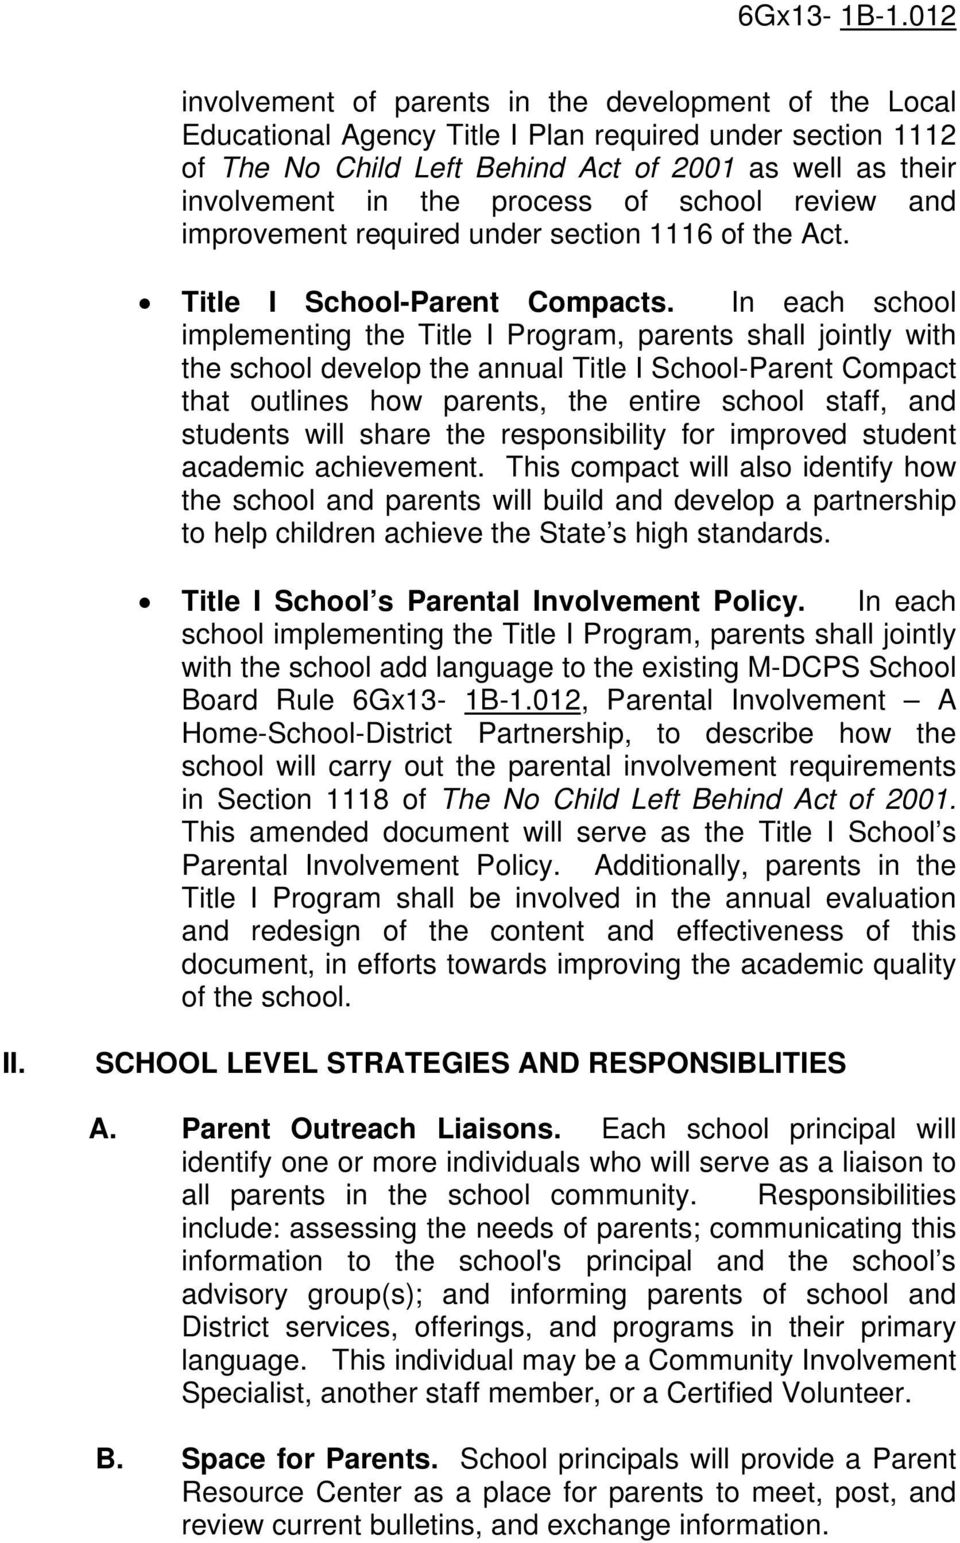 In each school implementing the Title I Program, parents shall jointly with the school develop the annual Title I School-Parent Compact that outlines how parents, the entire school staff, and